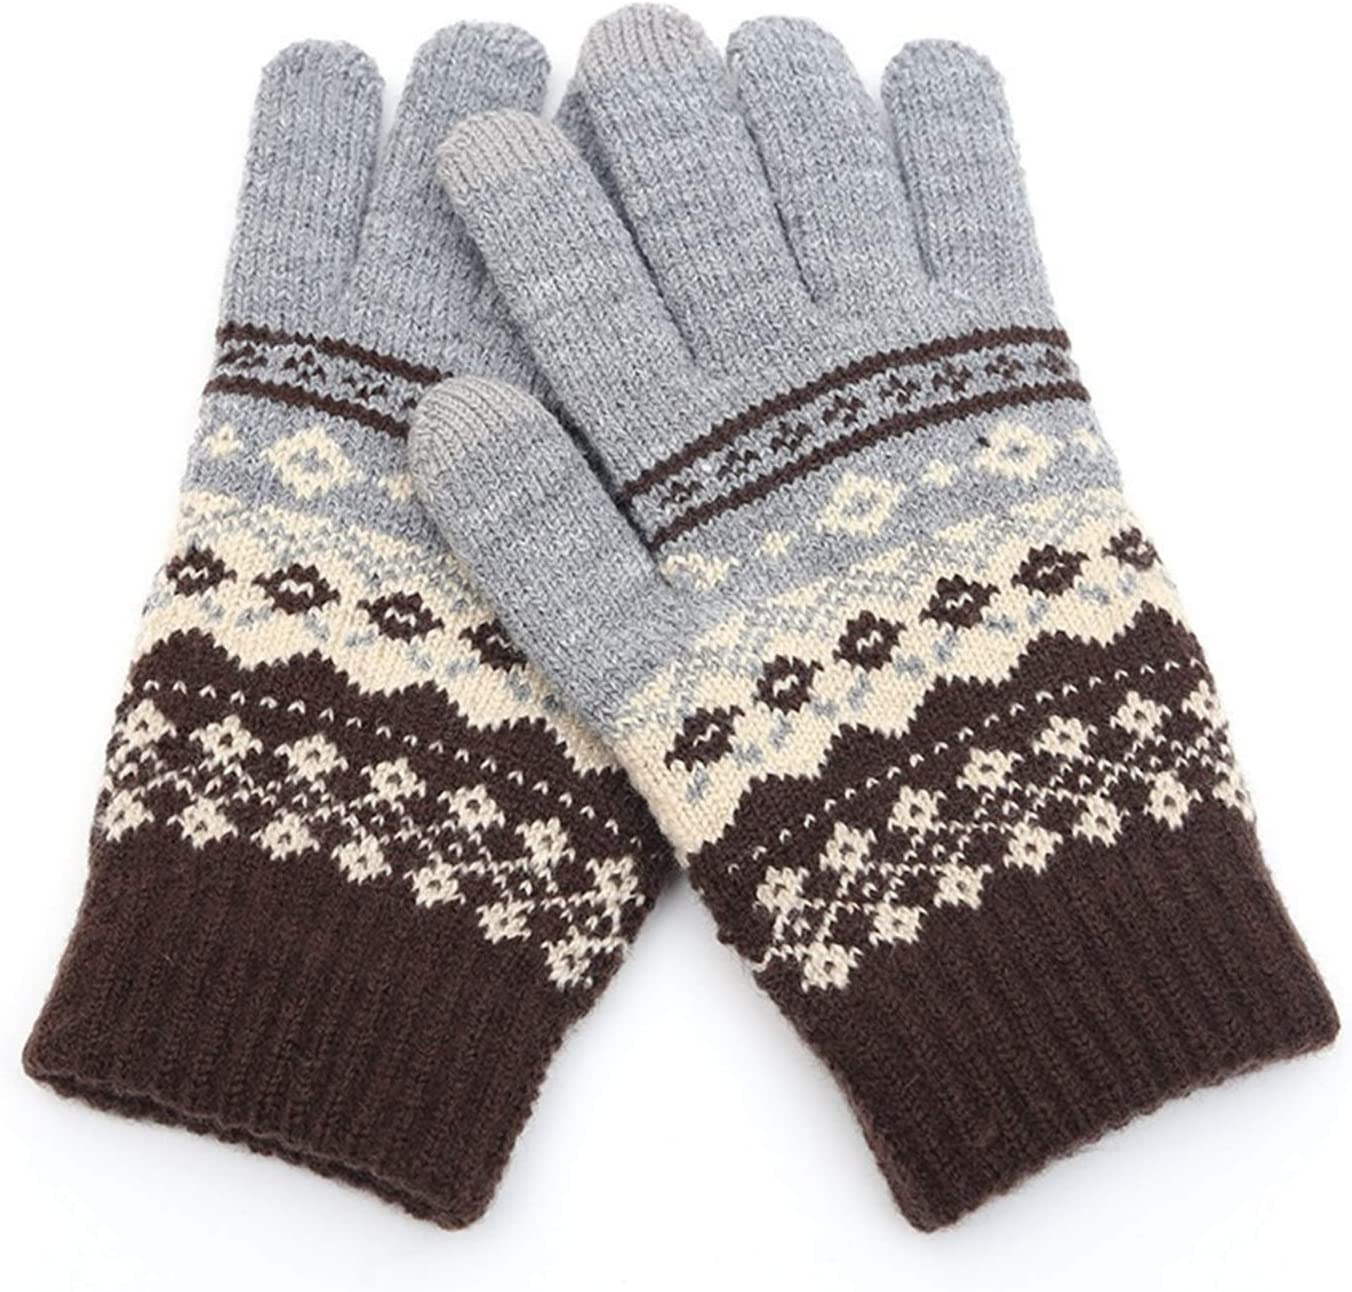 JBIVWW Winter Warm Thick Touch Screen Gloves Women's Wool Knitted Gloves Mittens for Mobile Phone Tablet Pad (Color : 5, Gloves Size : One Size)